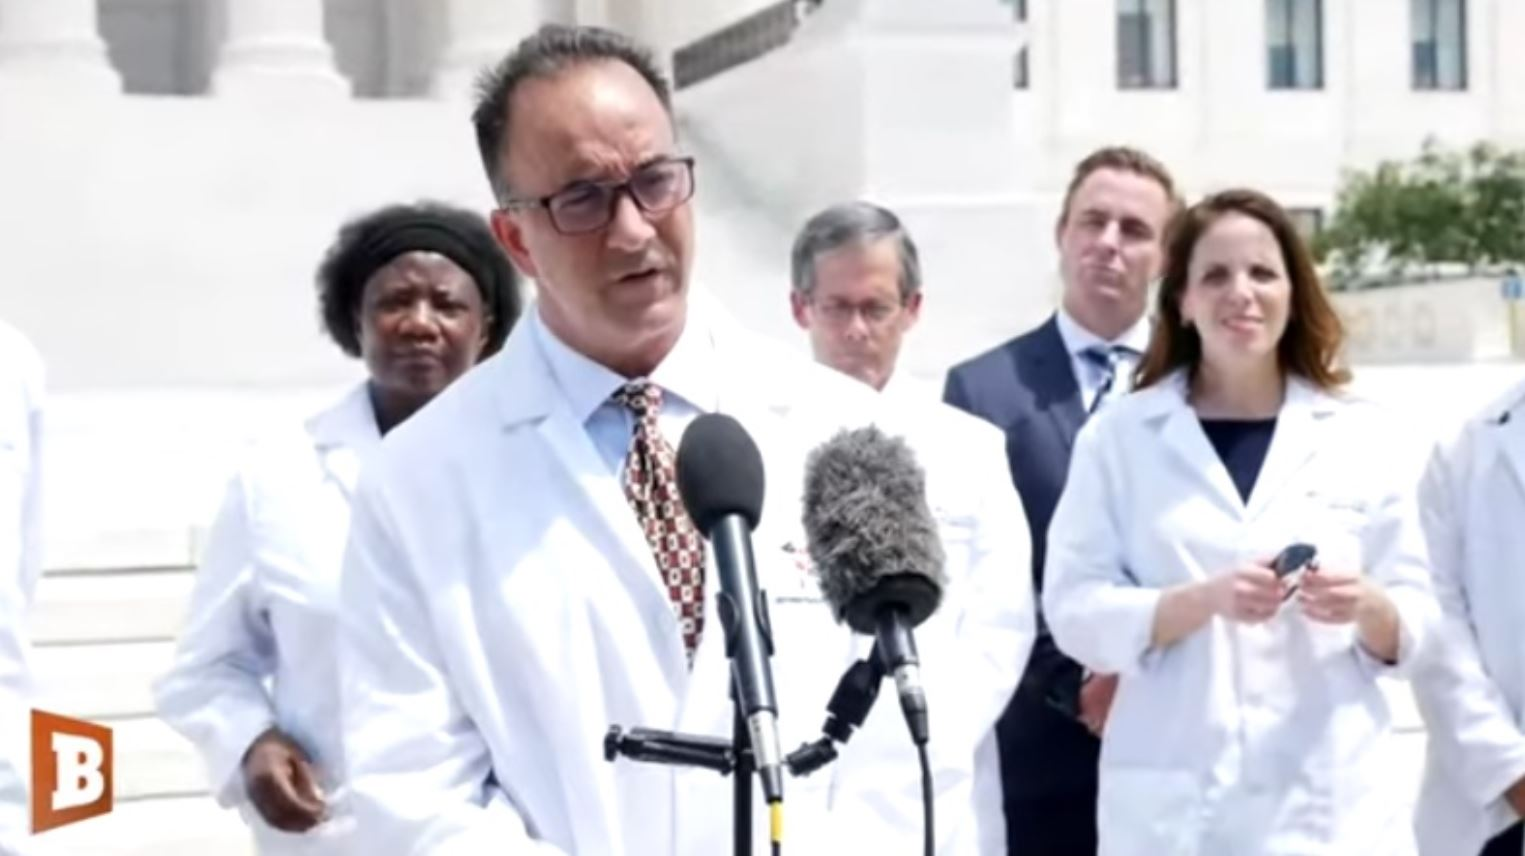 frontline-doctors-on-censorship:-we're-coming-after-you-big-tech-–-we-will-not-be-silenced!